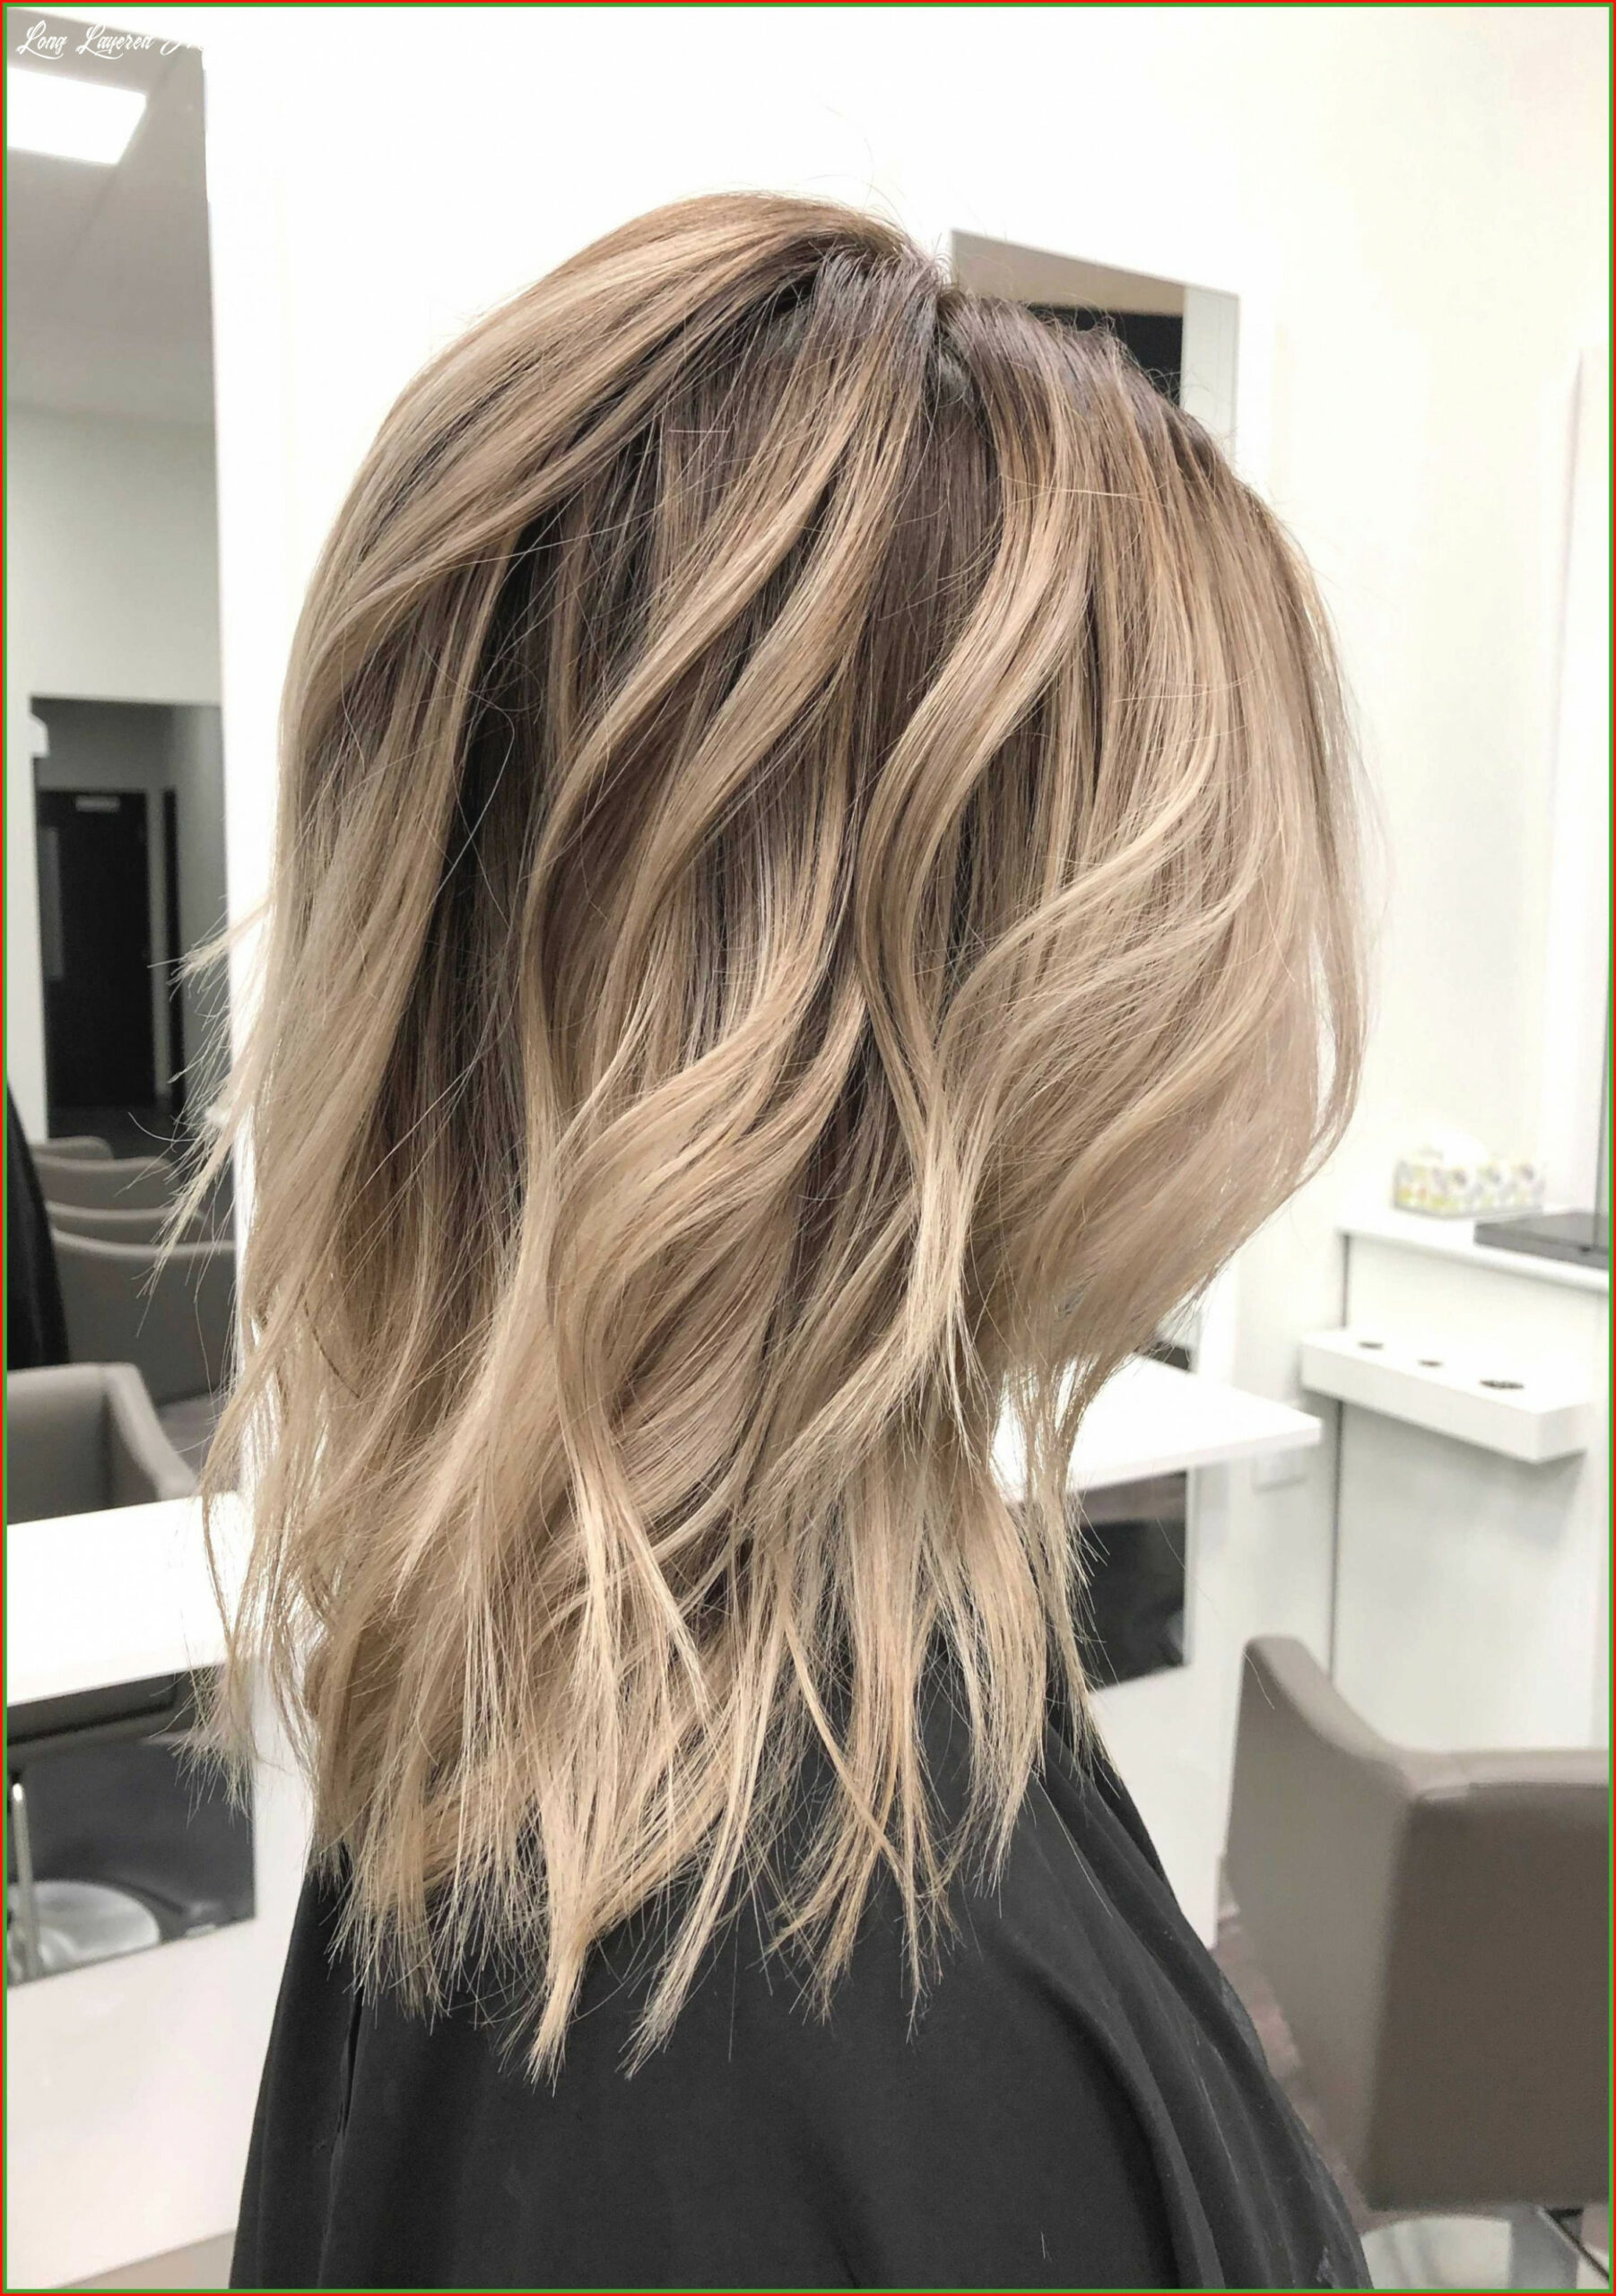 Cool med to long layered hairstyles images of long hairstyles